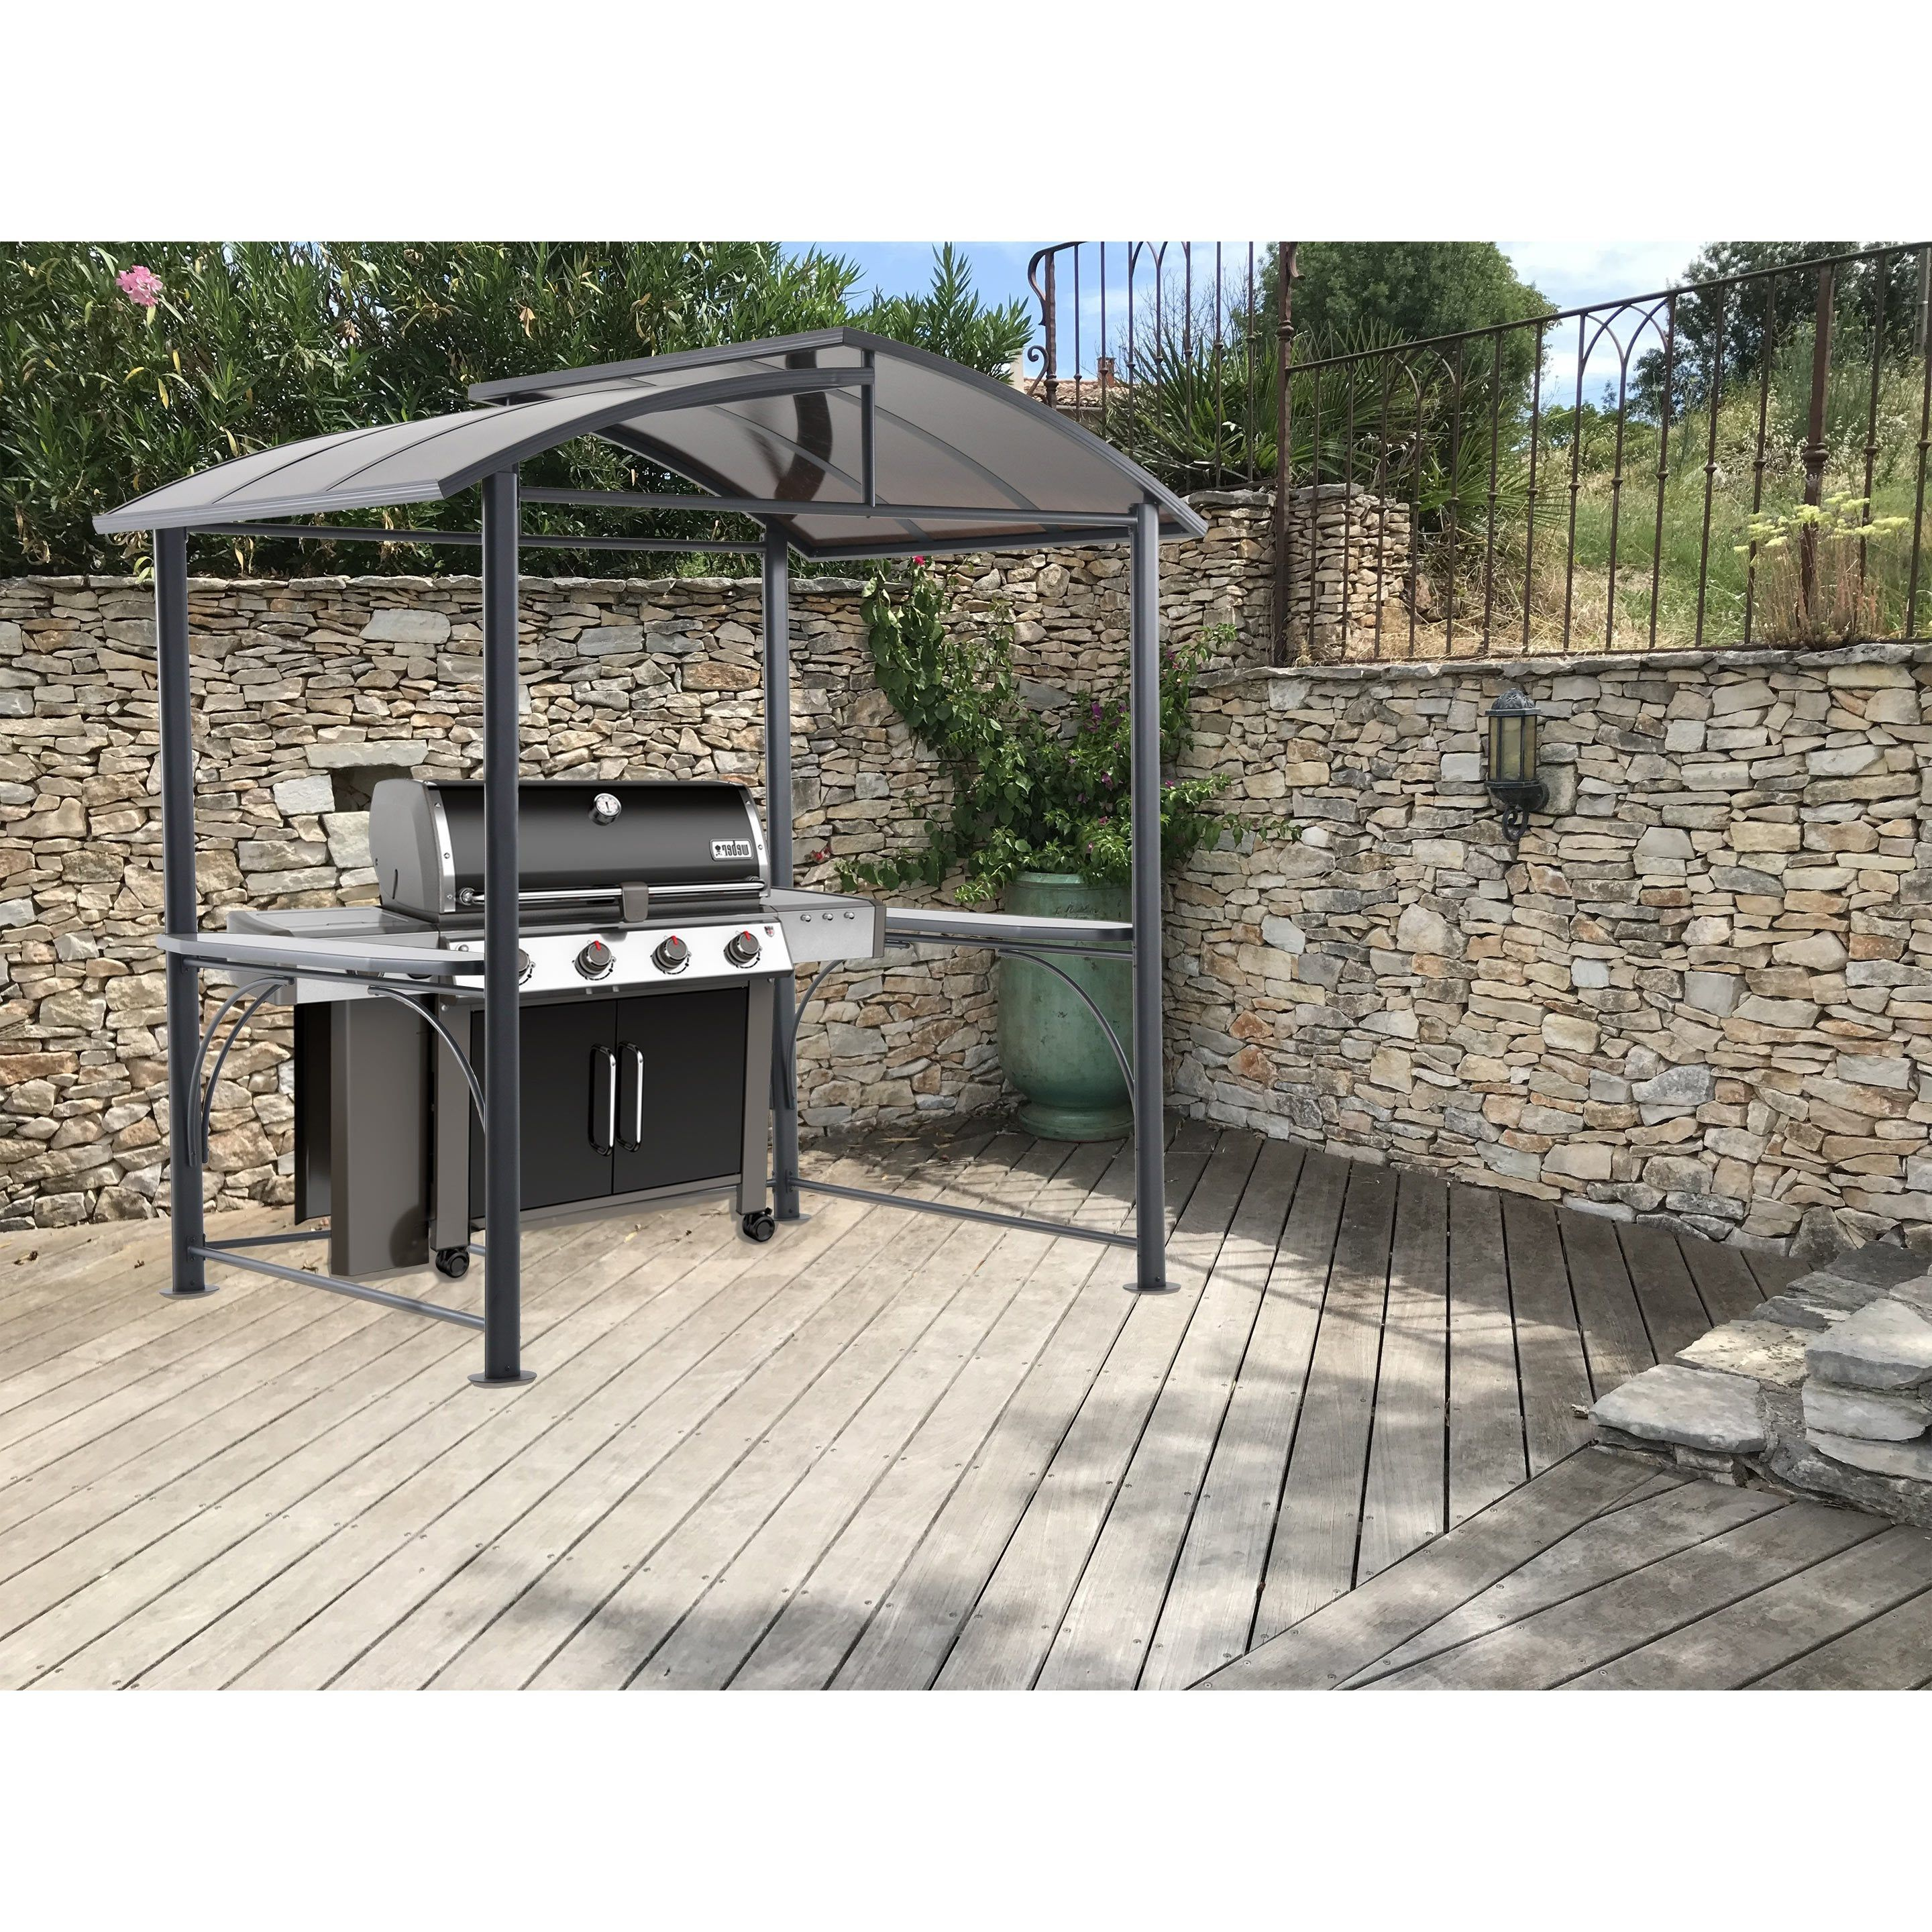 epingle par denis sur abris barbecue en